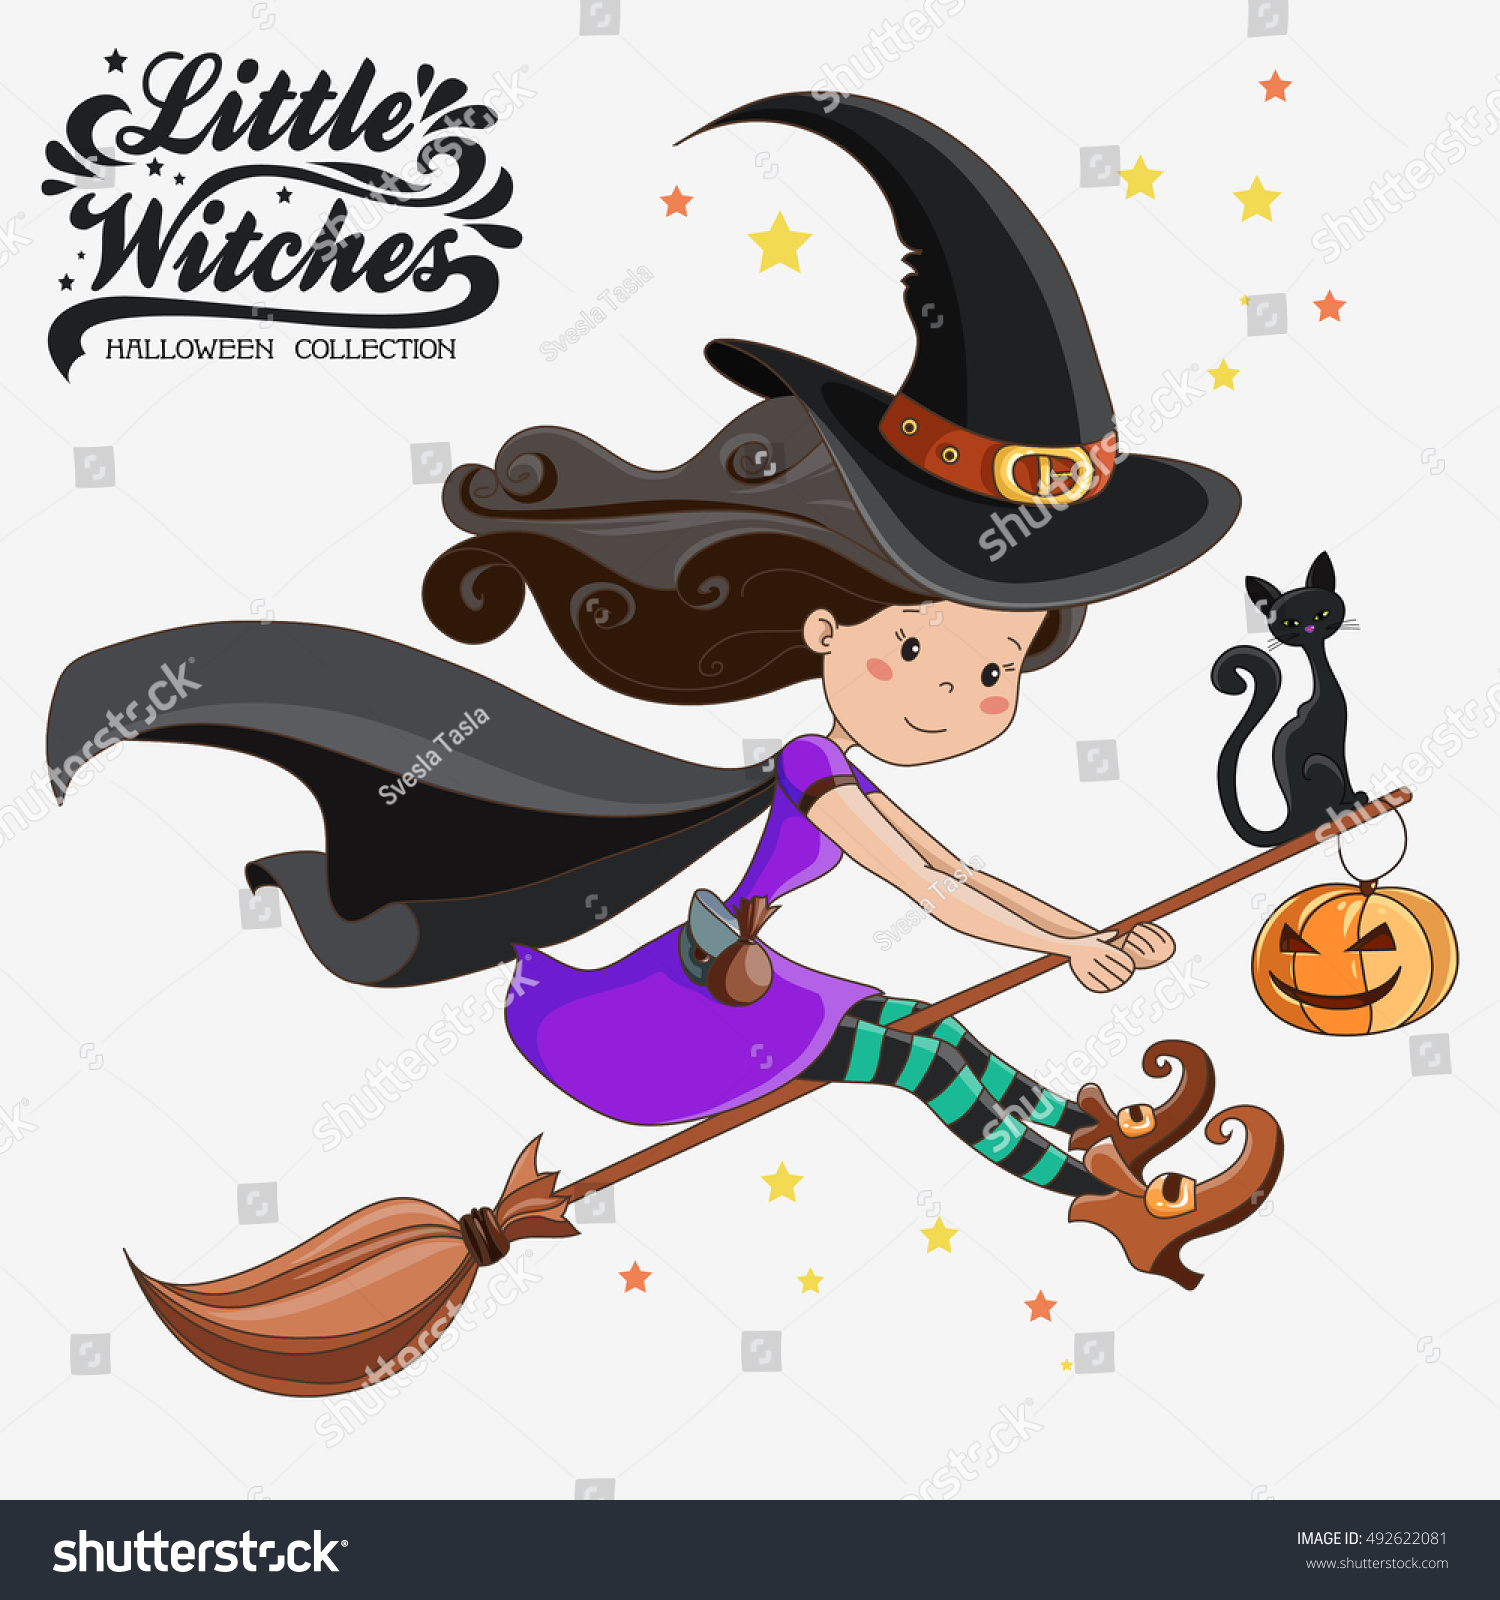 little witch halloween witch halloween collection stock vector